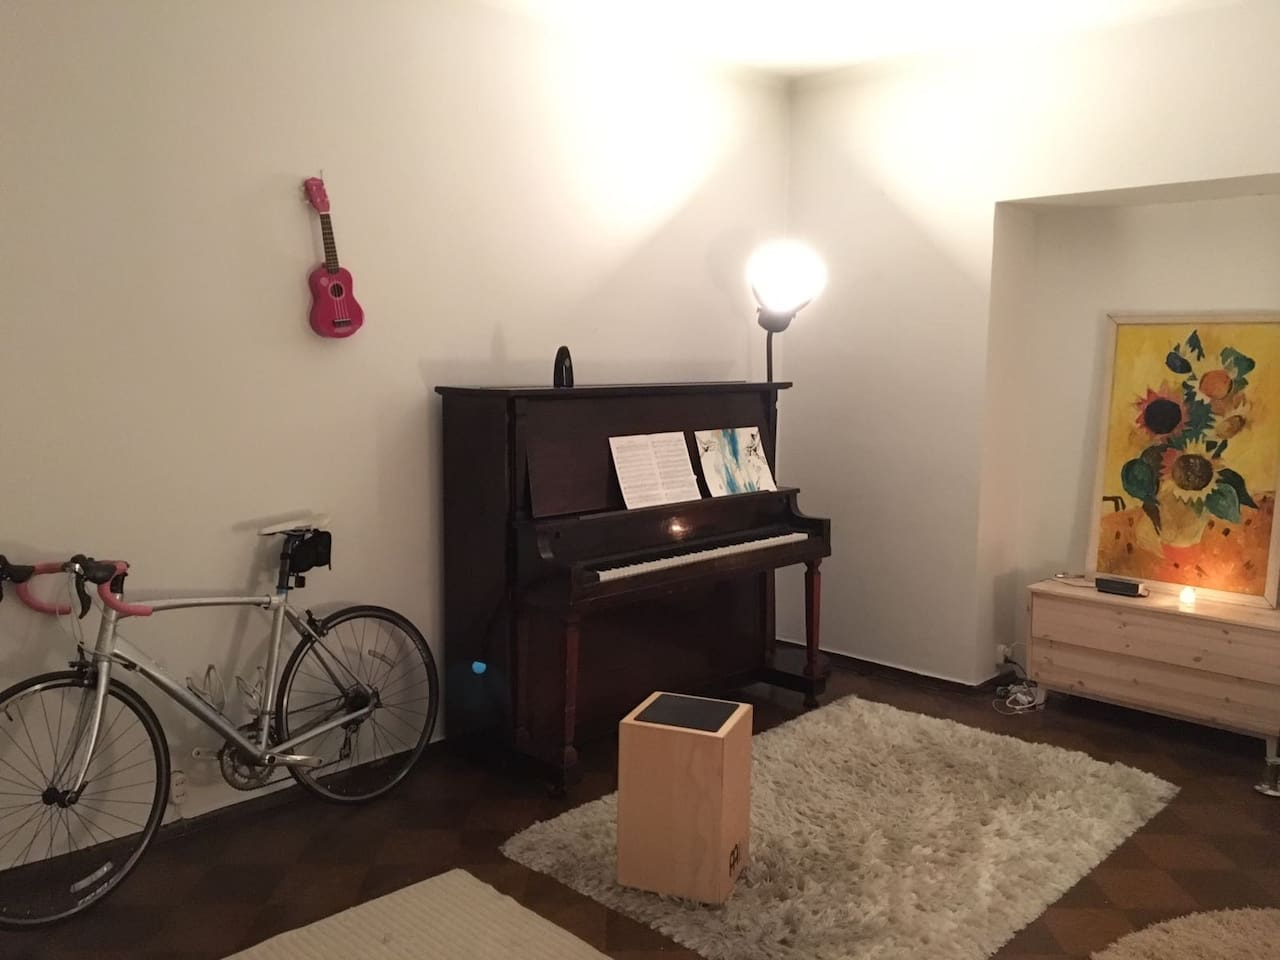 Spacious room with 116-year-old antique piano